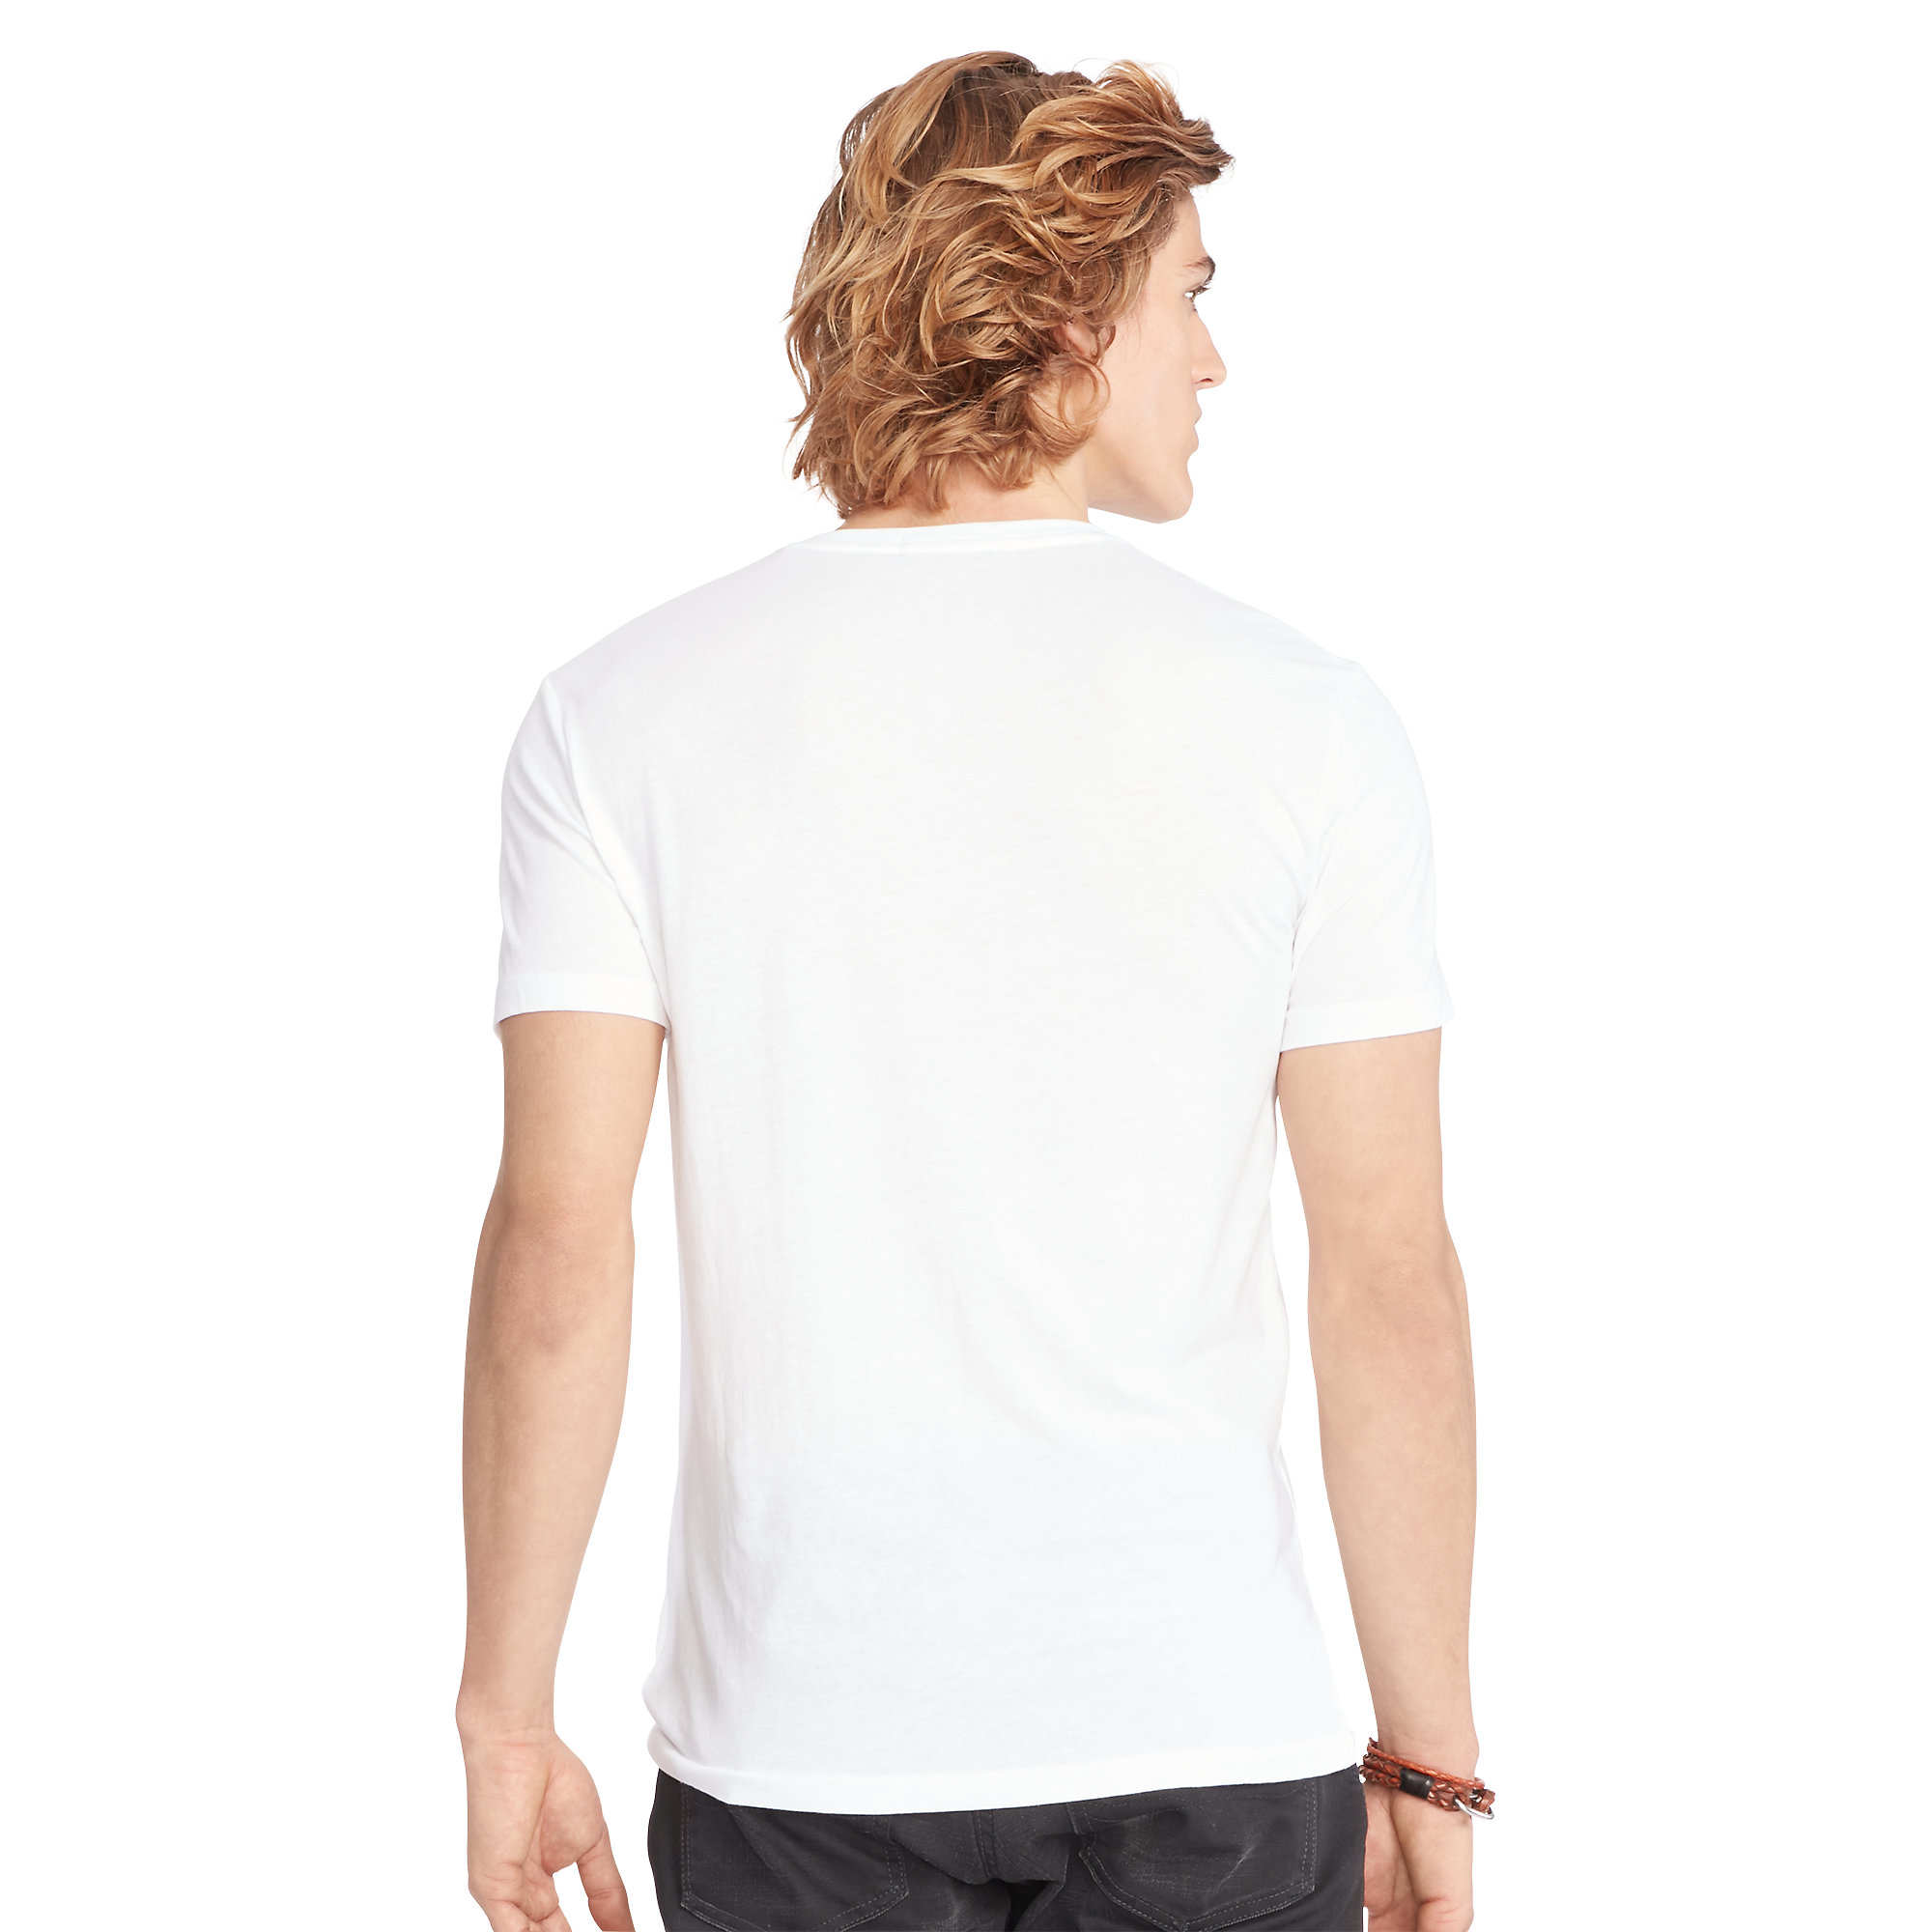 polo ralph lauren cotton jersey v neck t shirt in white for men lyst. Black Bedroom Furniture Sets. Home Design Ideas